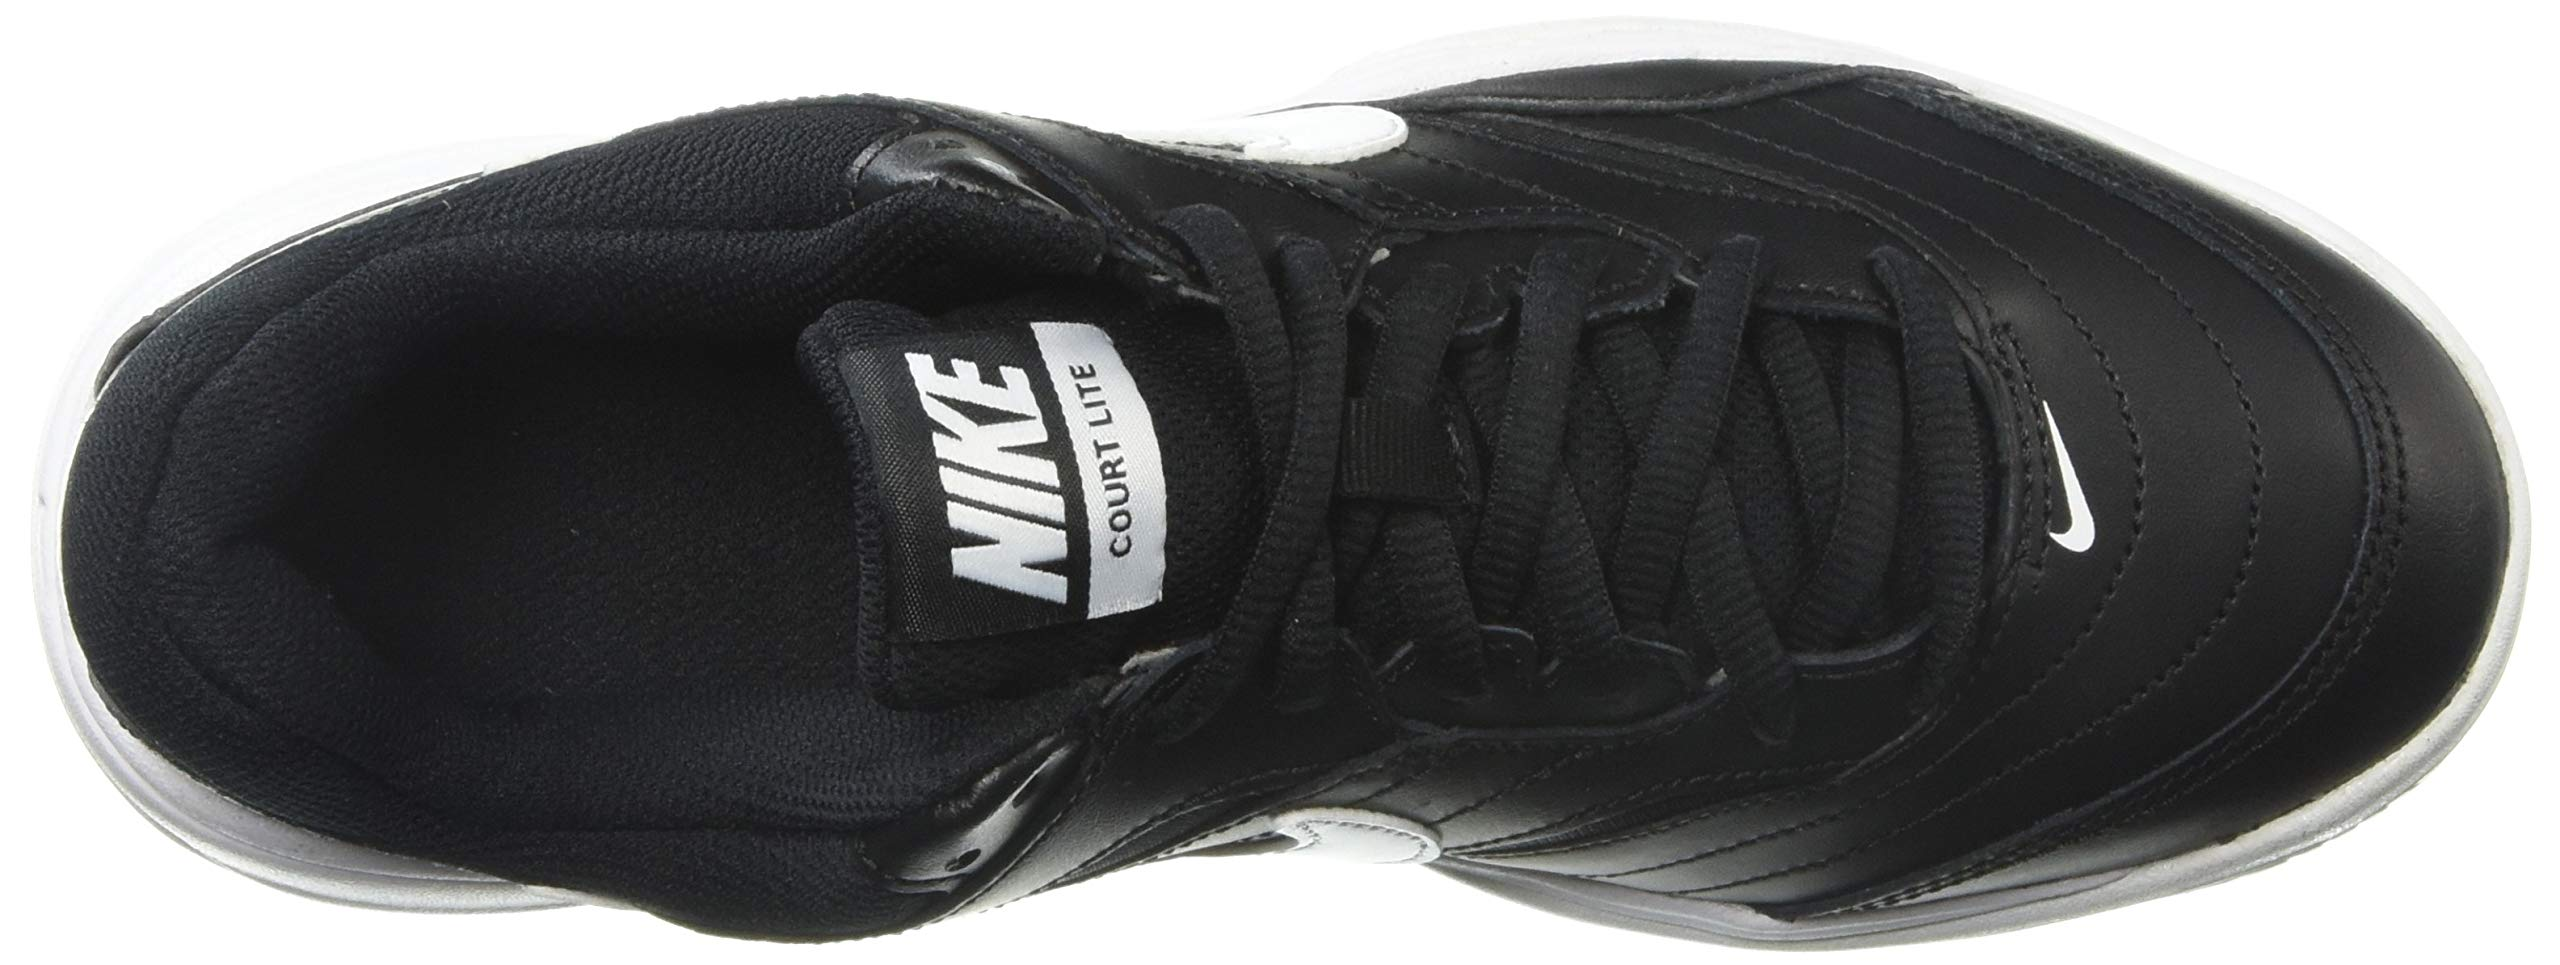 NIKE Men's Court Lite Athletic Shoe, Black/White/Medium Grey, 7.5 Regular US by Nike (Image #8)